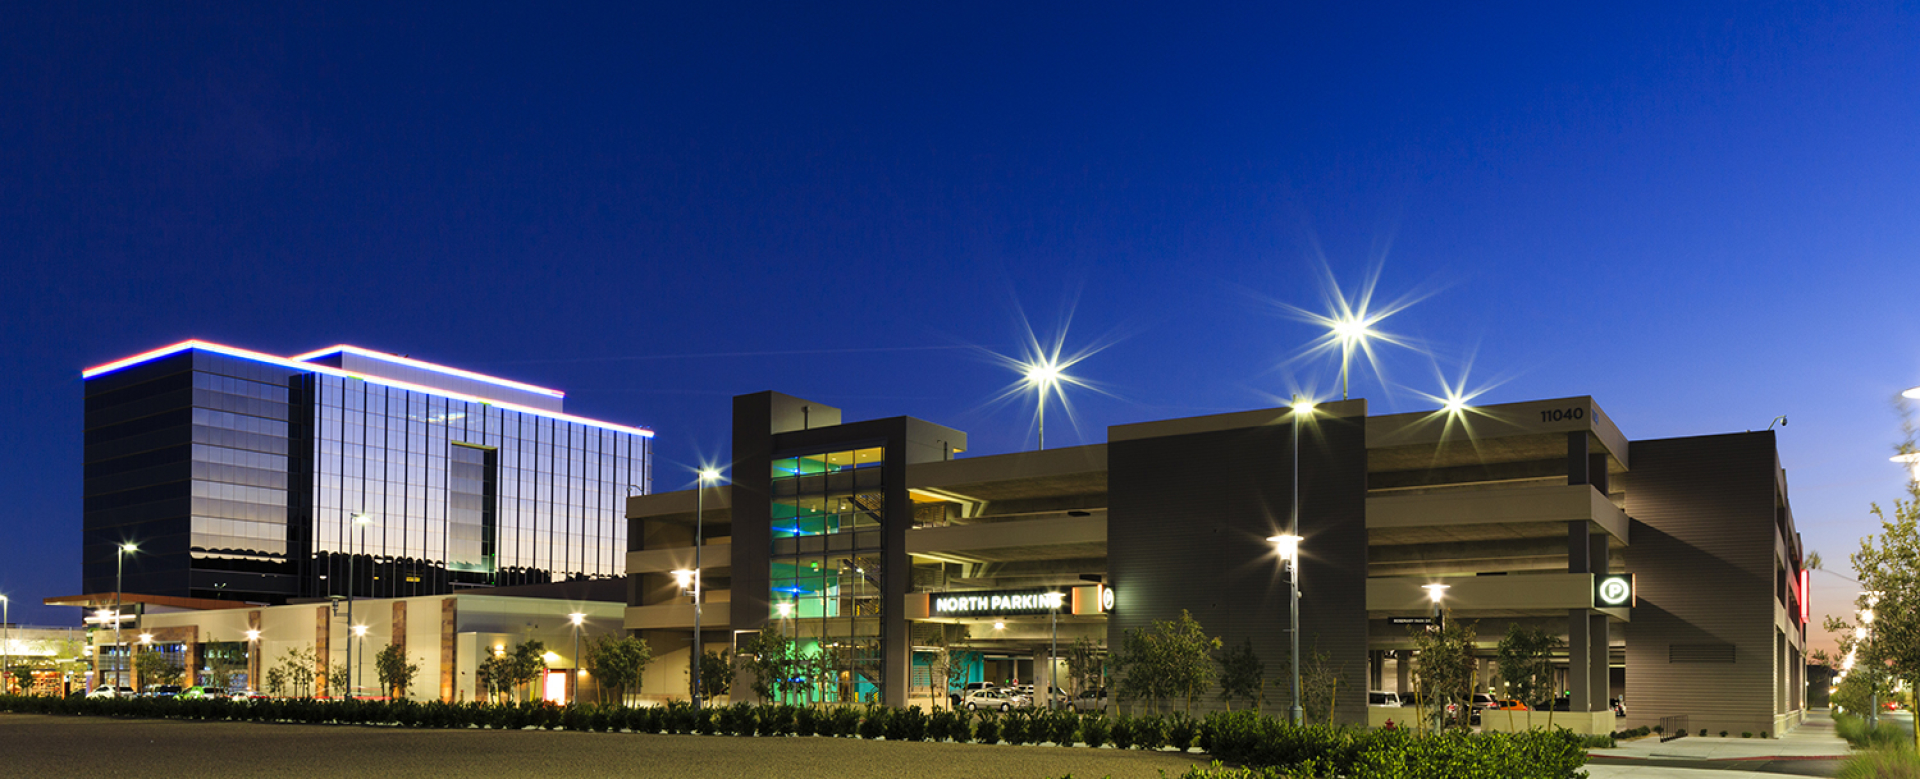 Downtown Summerlin - Parking Structures 2 & 3